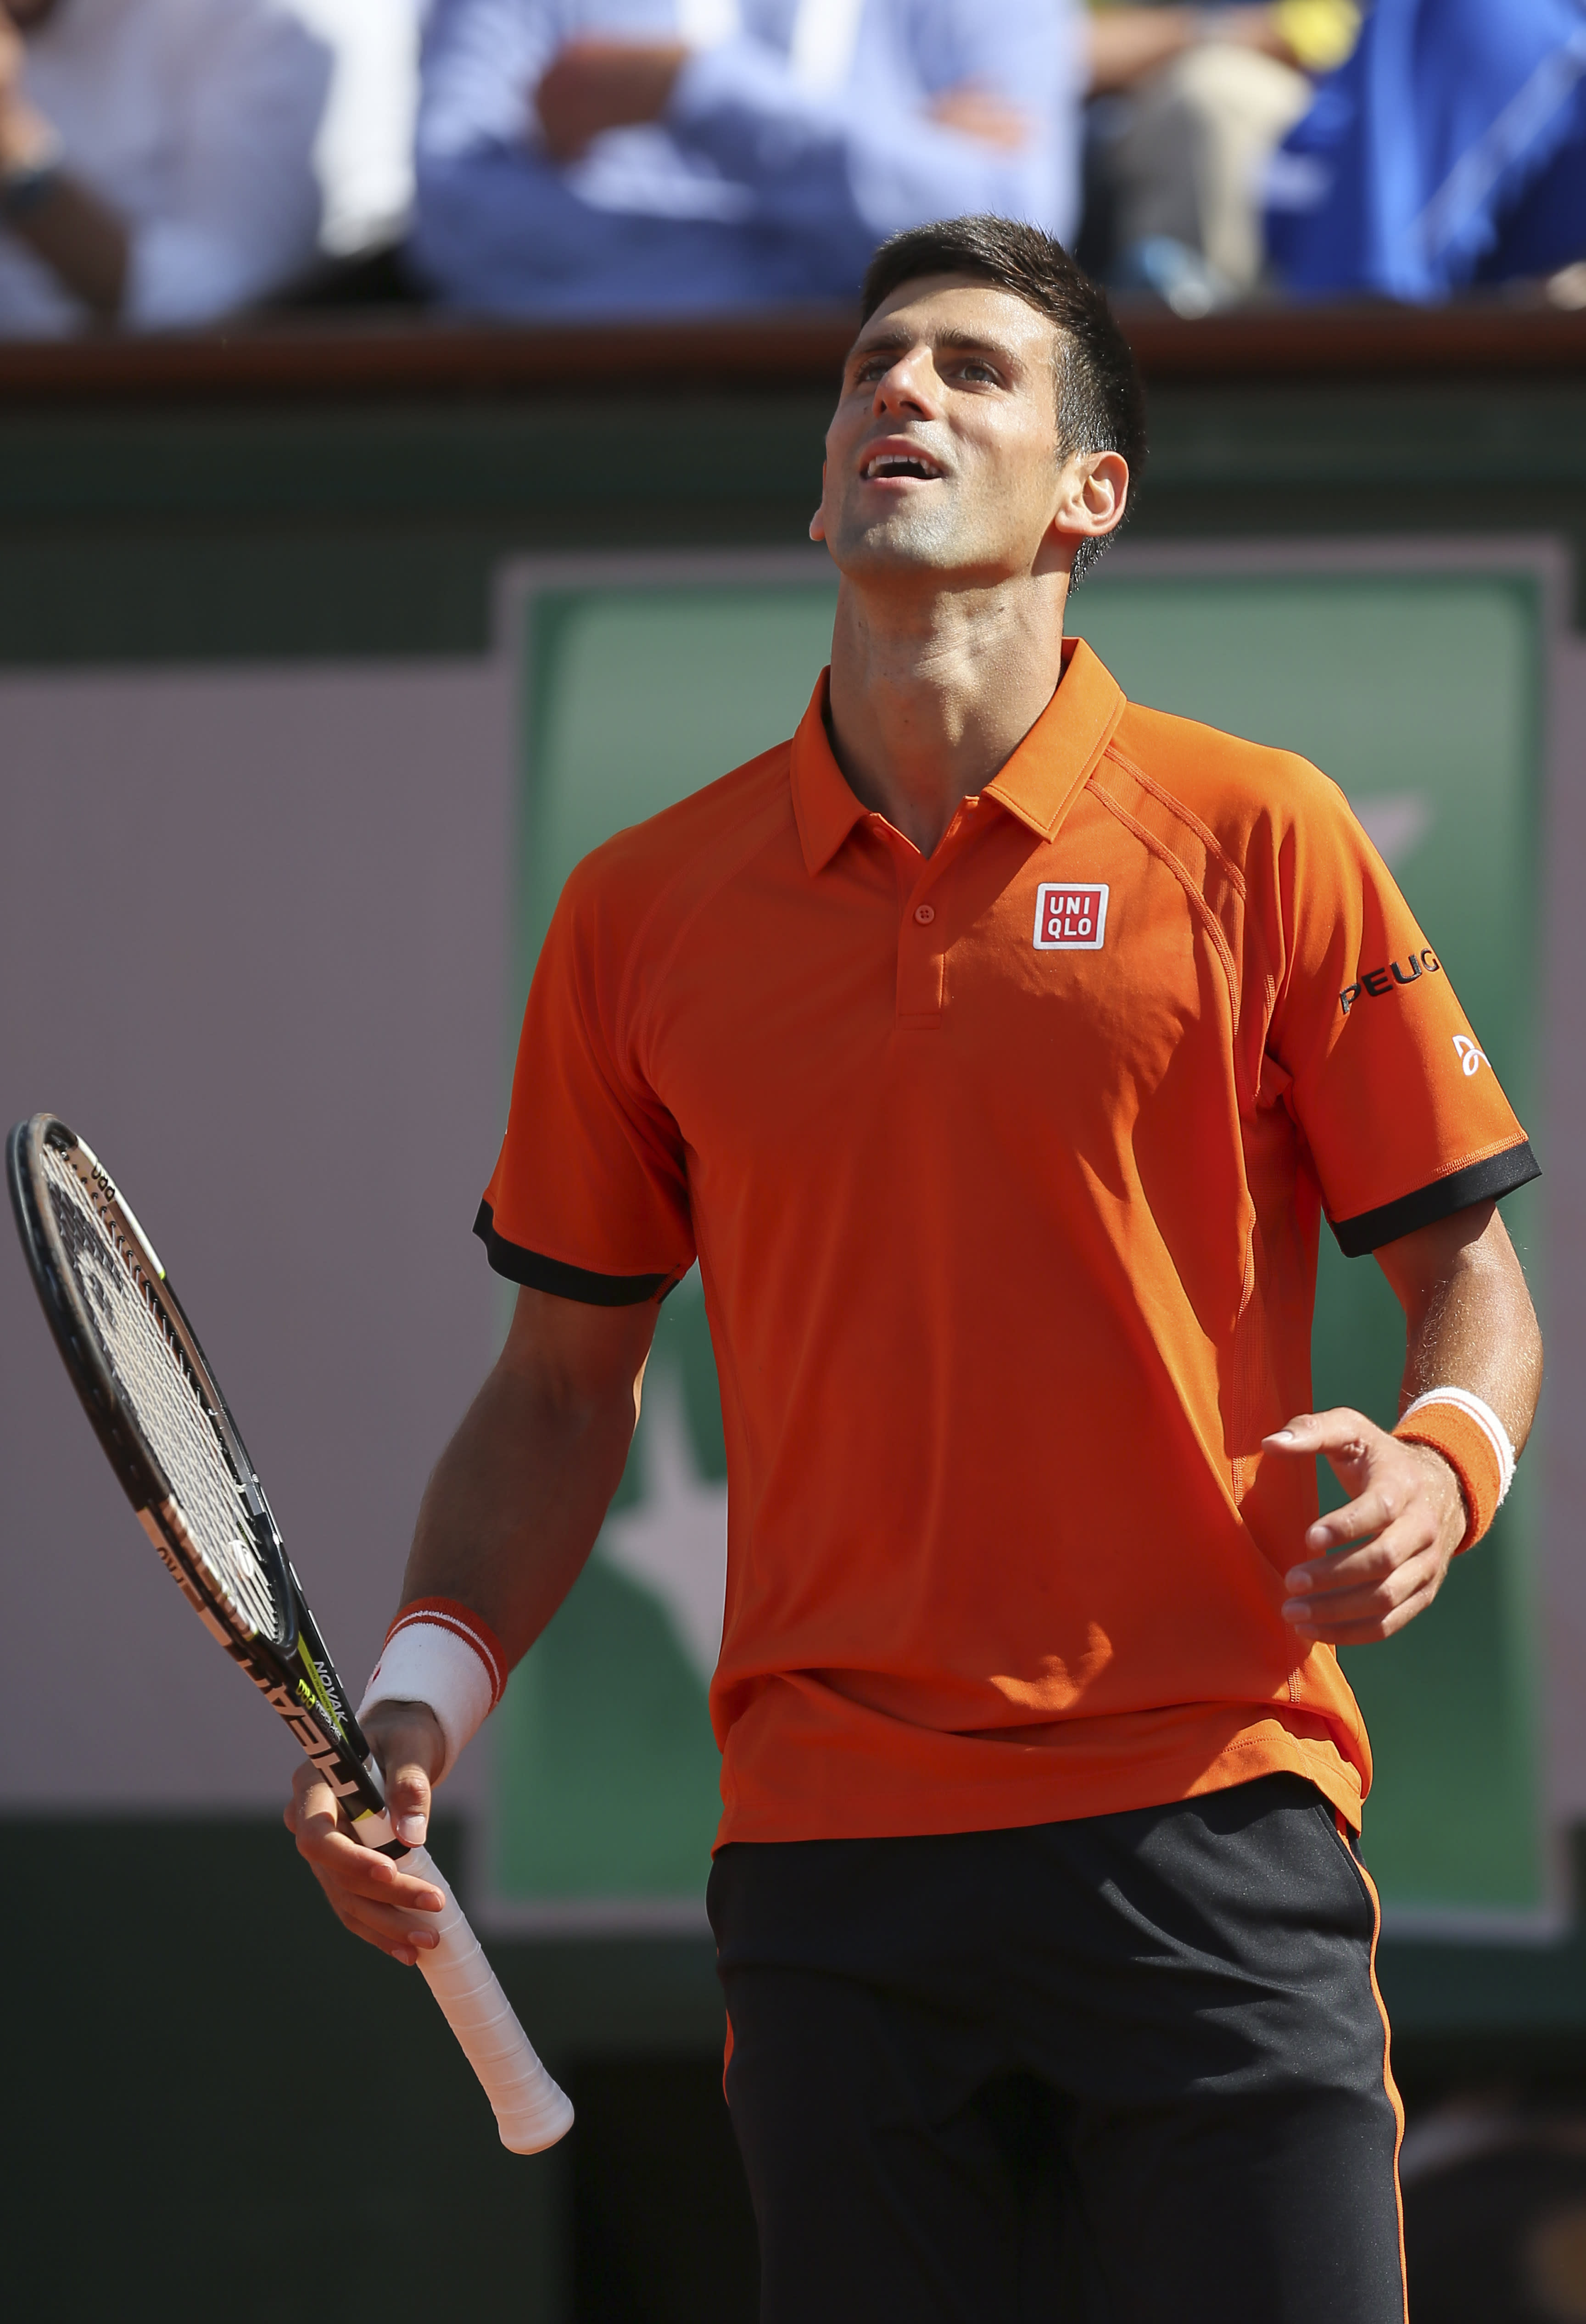 The Latest: Djokovic takes second set against Nadal